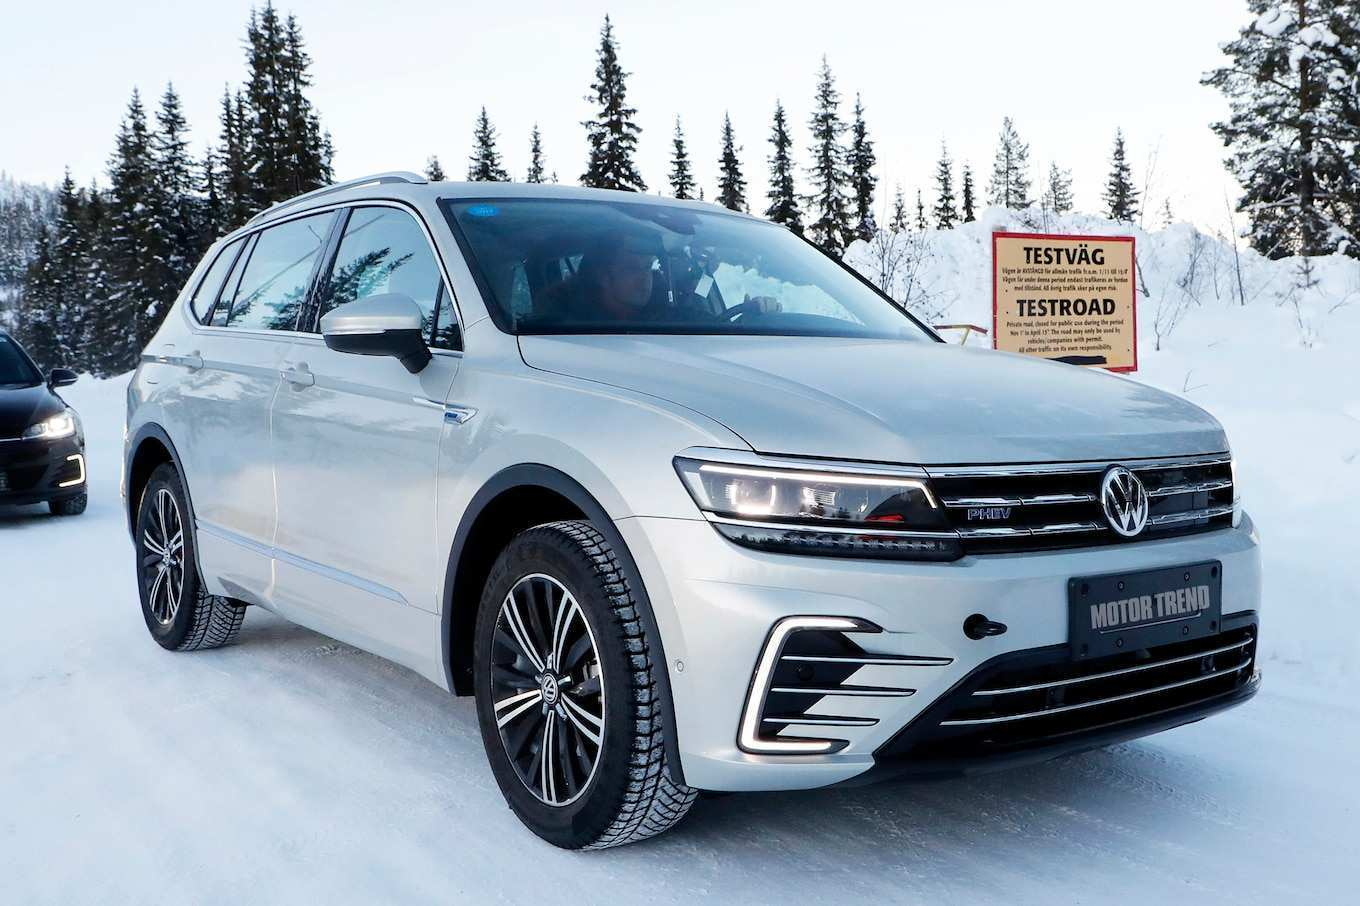 97 The Volkswagen Tiguan Hybrid 2020 Overview